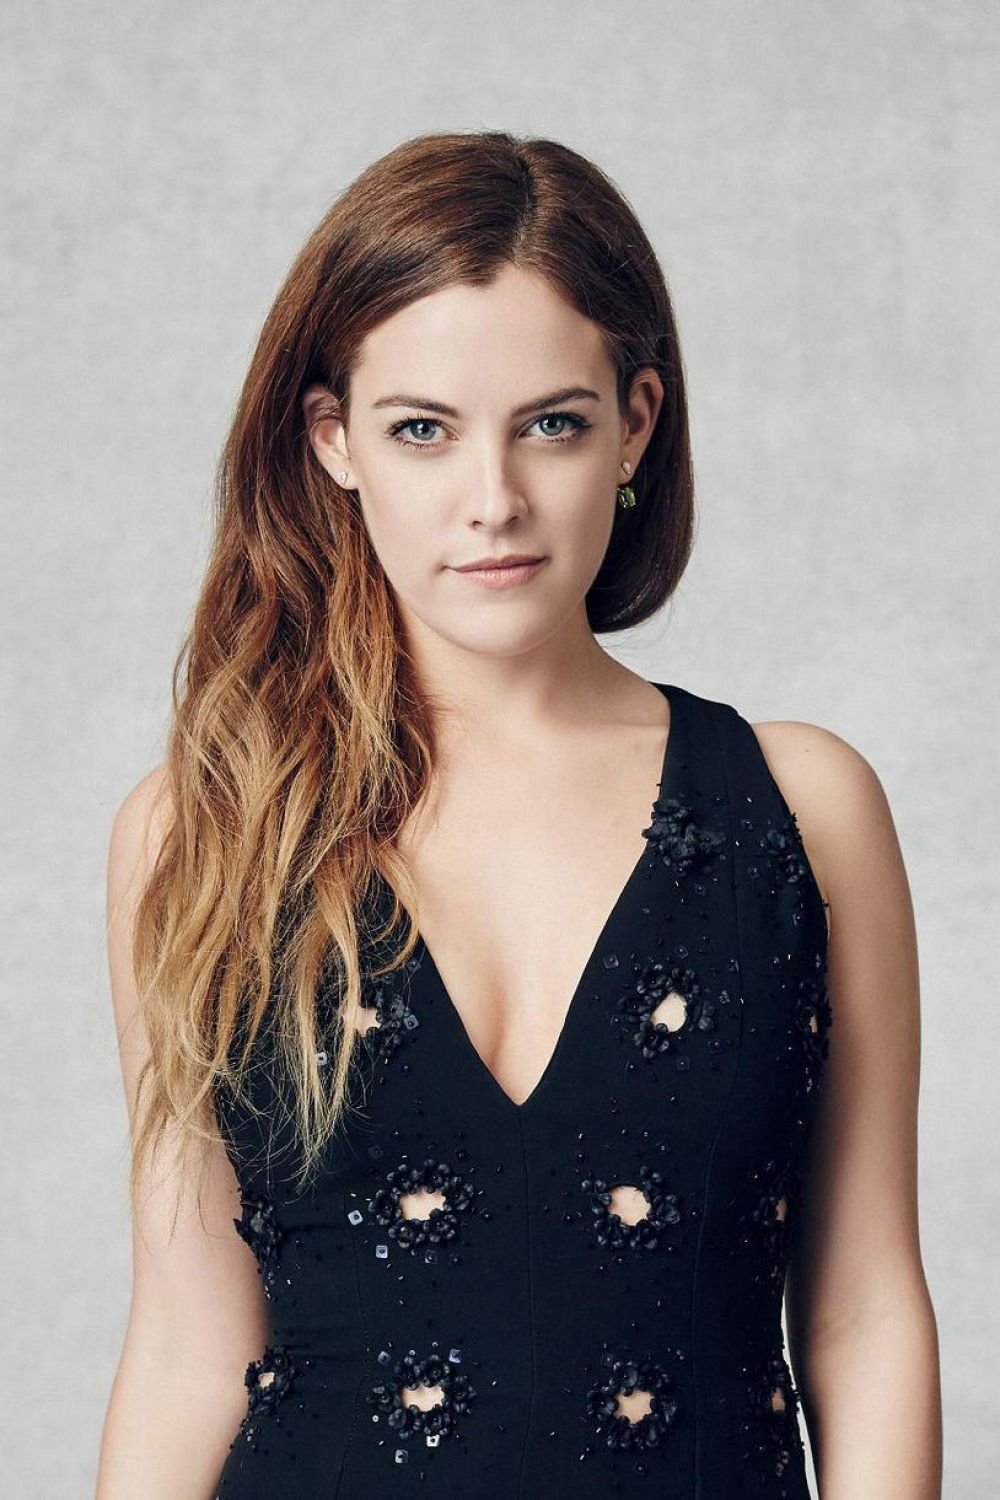 Riley Keough Archives - Page 3 of 6 - HawtCelebs - HawtCelebs